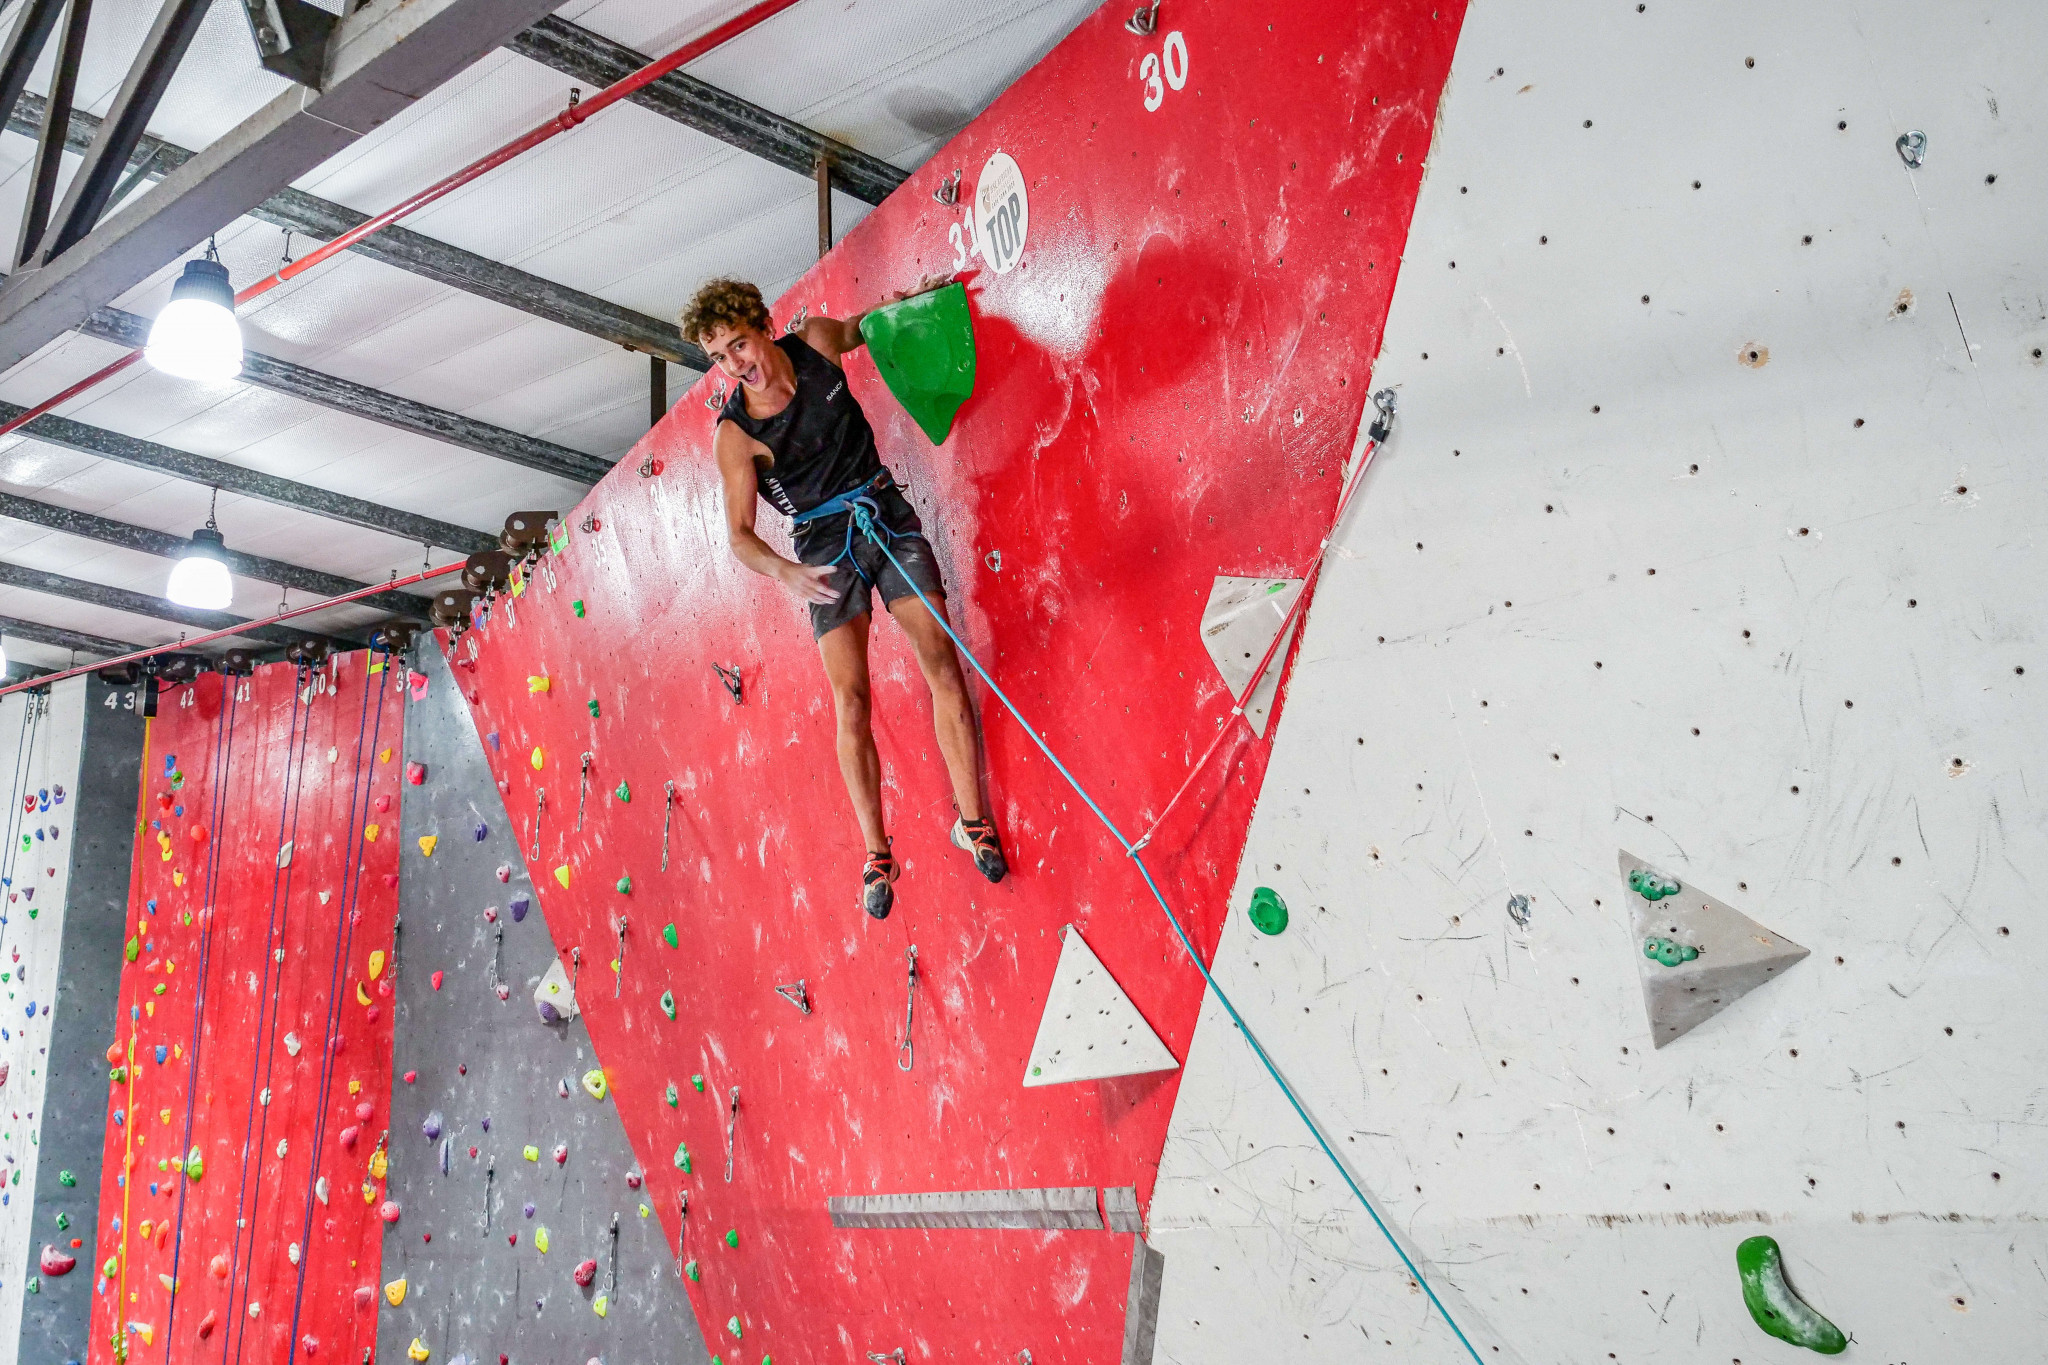 Christopher Cosser clinched a place at Tokyo 2020 ©IFSC